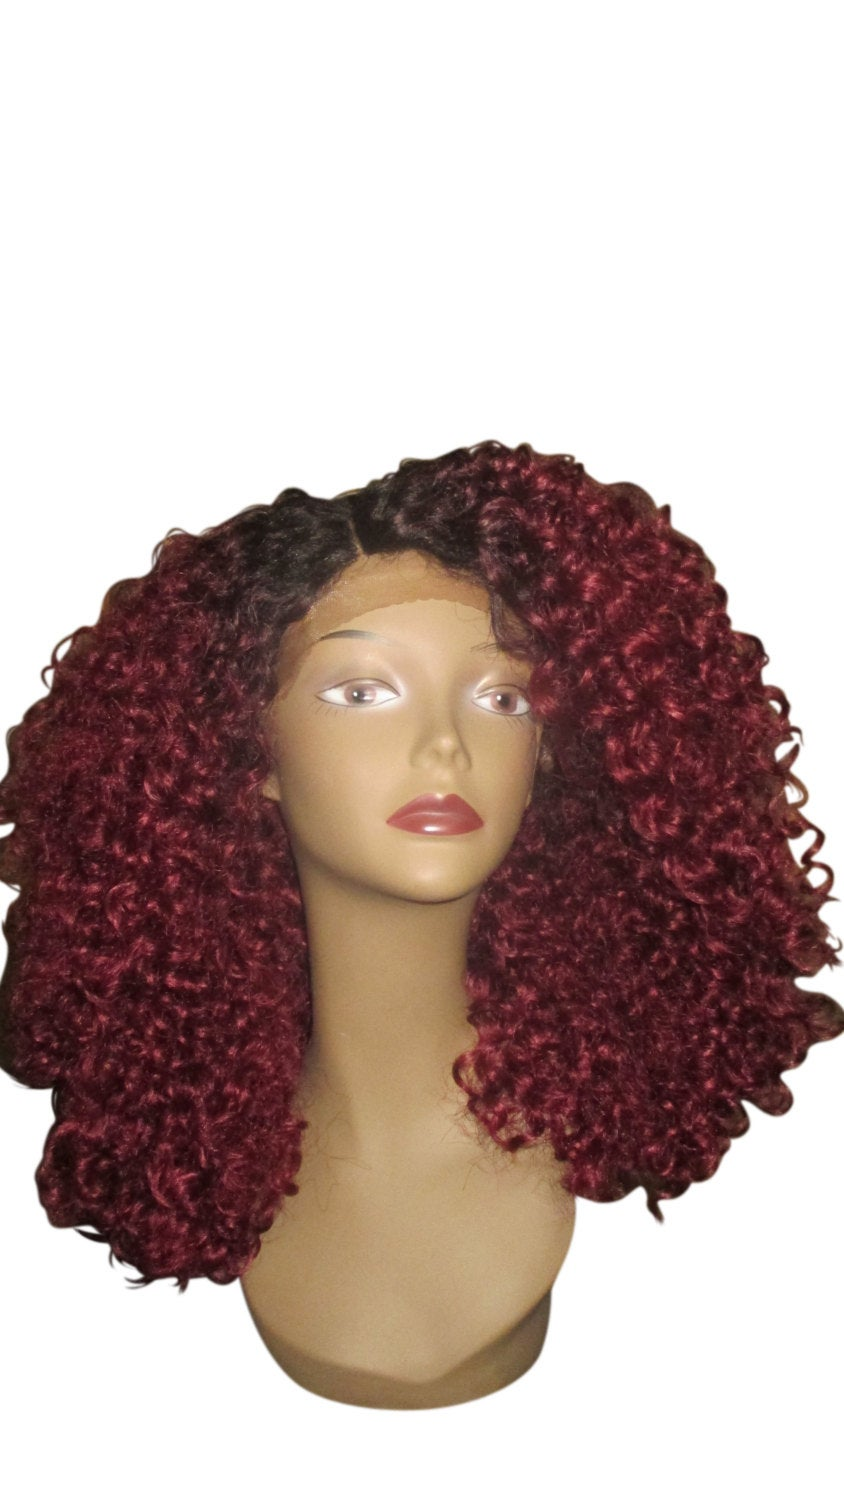 Essence Wigs Bold Burgundy Red The 'Diana Ross' Lace front Wig Hair Full Cap Lace Wig Unit Curly Special parting 3b 3c